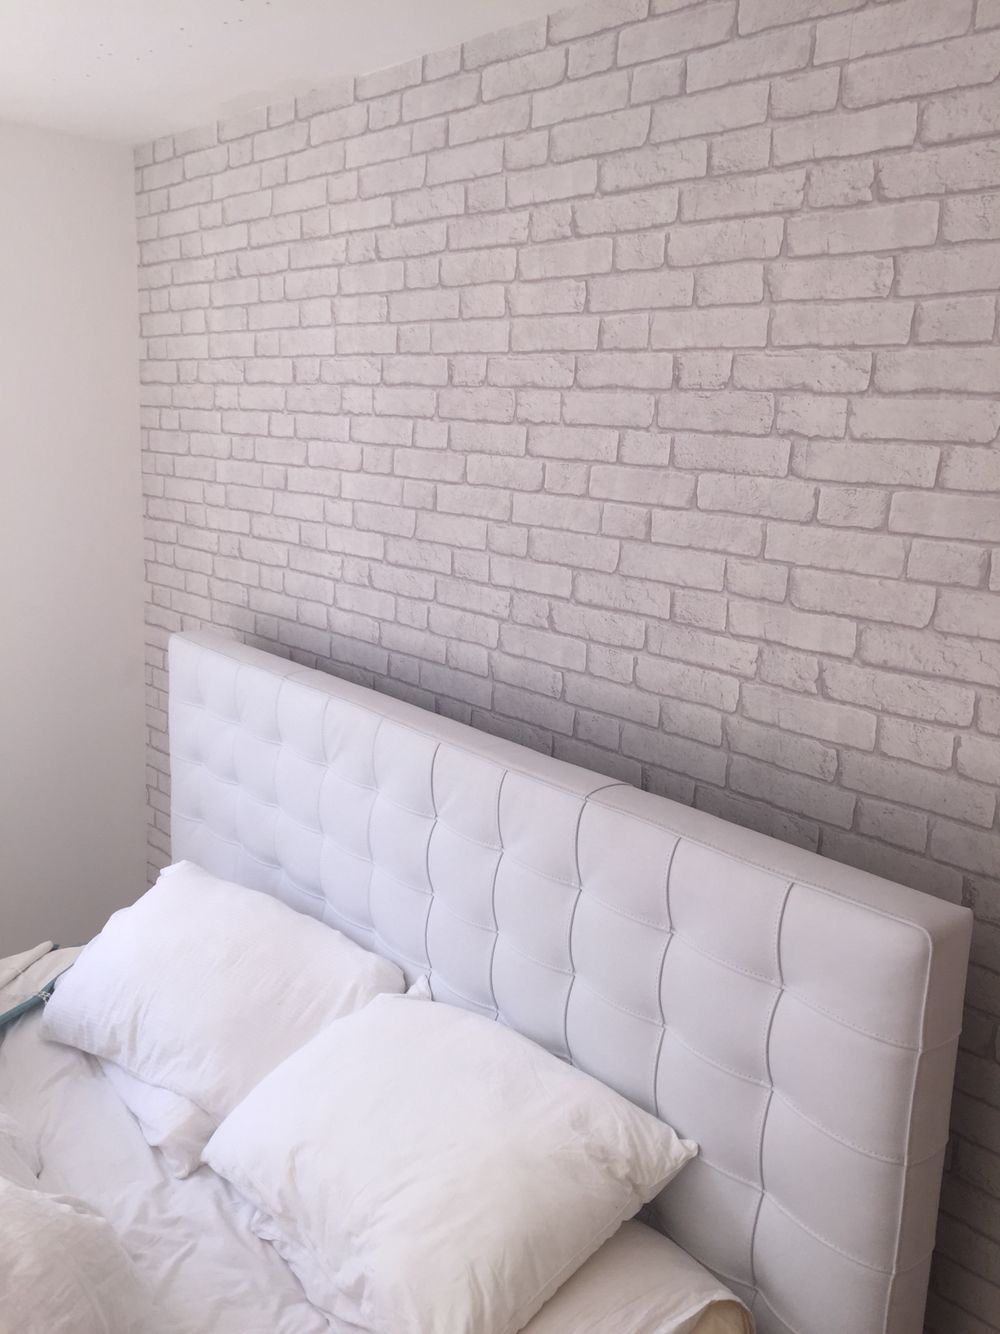 Off White Brick Effect Wallpaper In My Teenagers Bedroom Finished Decorating Today A White Brick Wallpaper Bedroom Brick Wallpaper Bedroom Brick Wall Bedroom